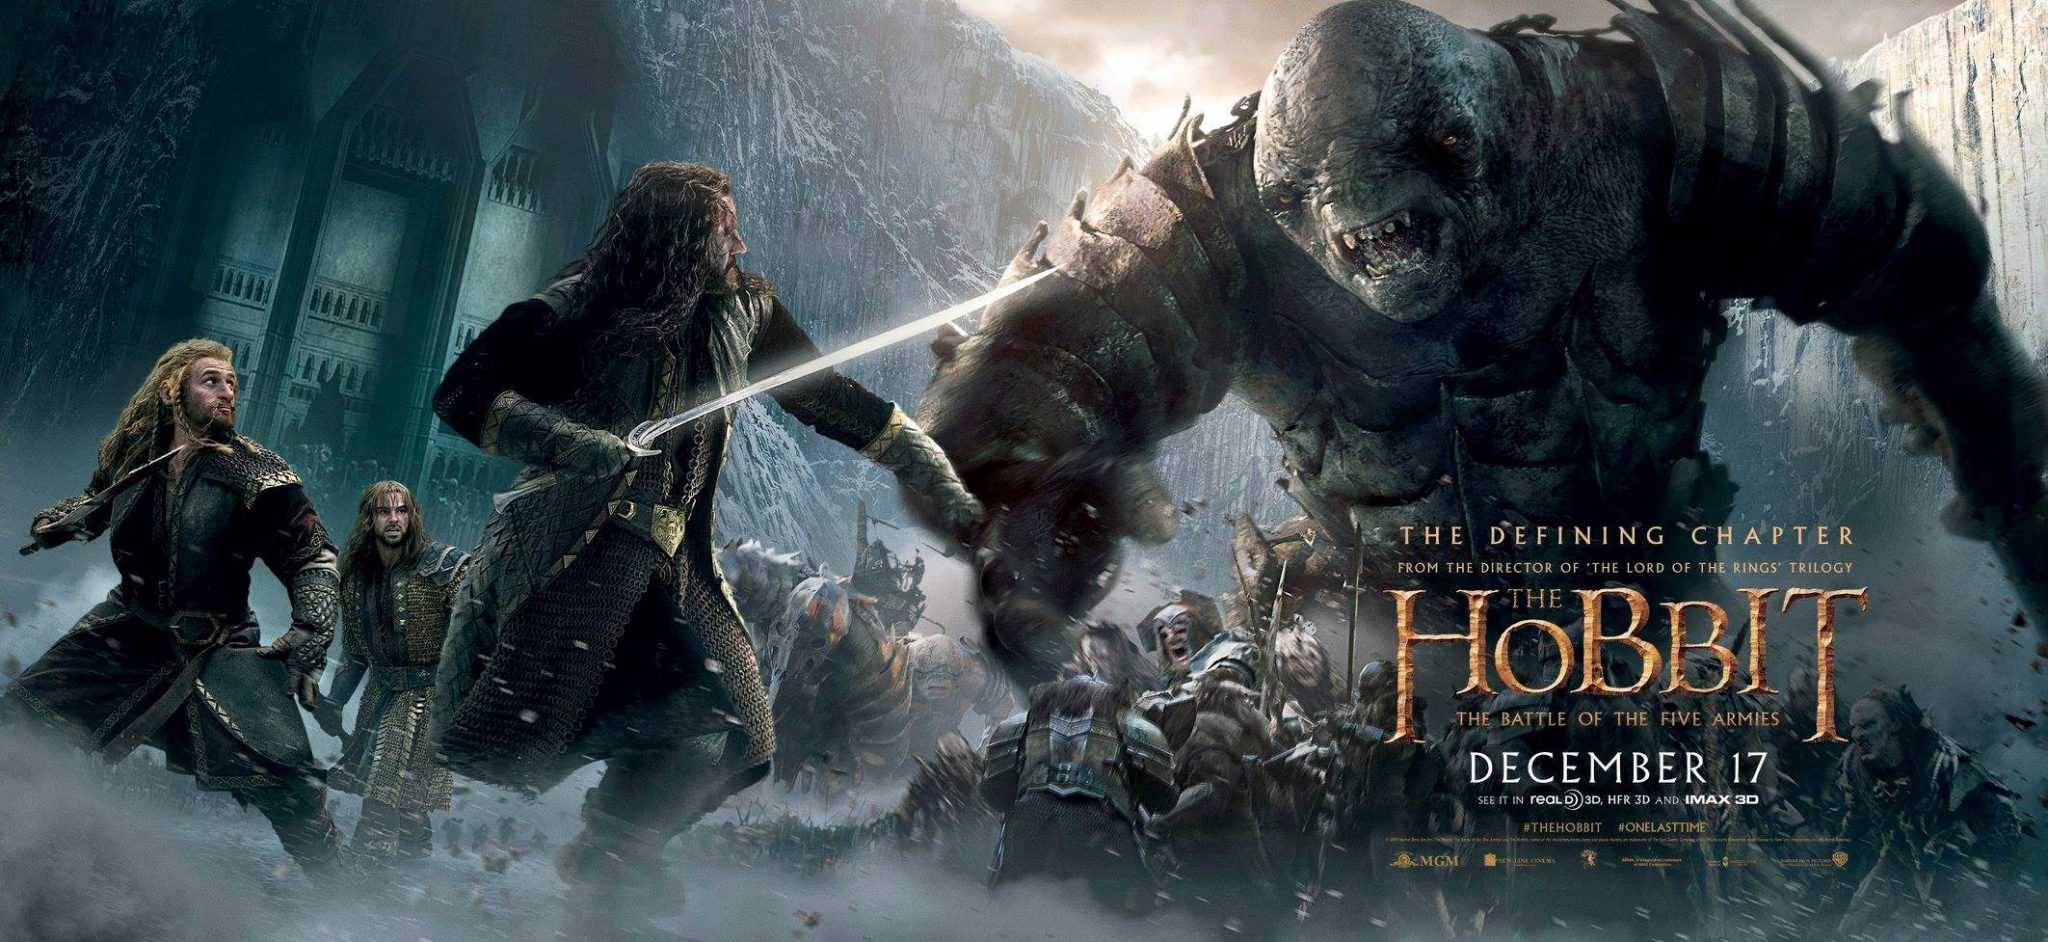 The Hobbit: The Battle of the Five Armies poster 23